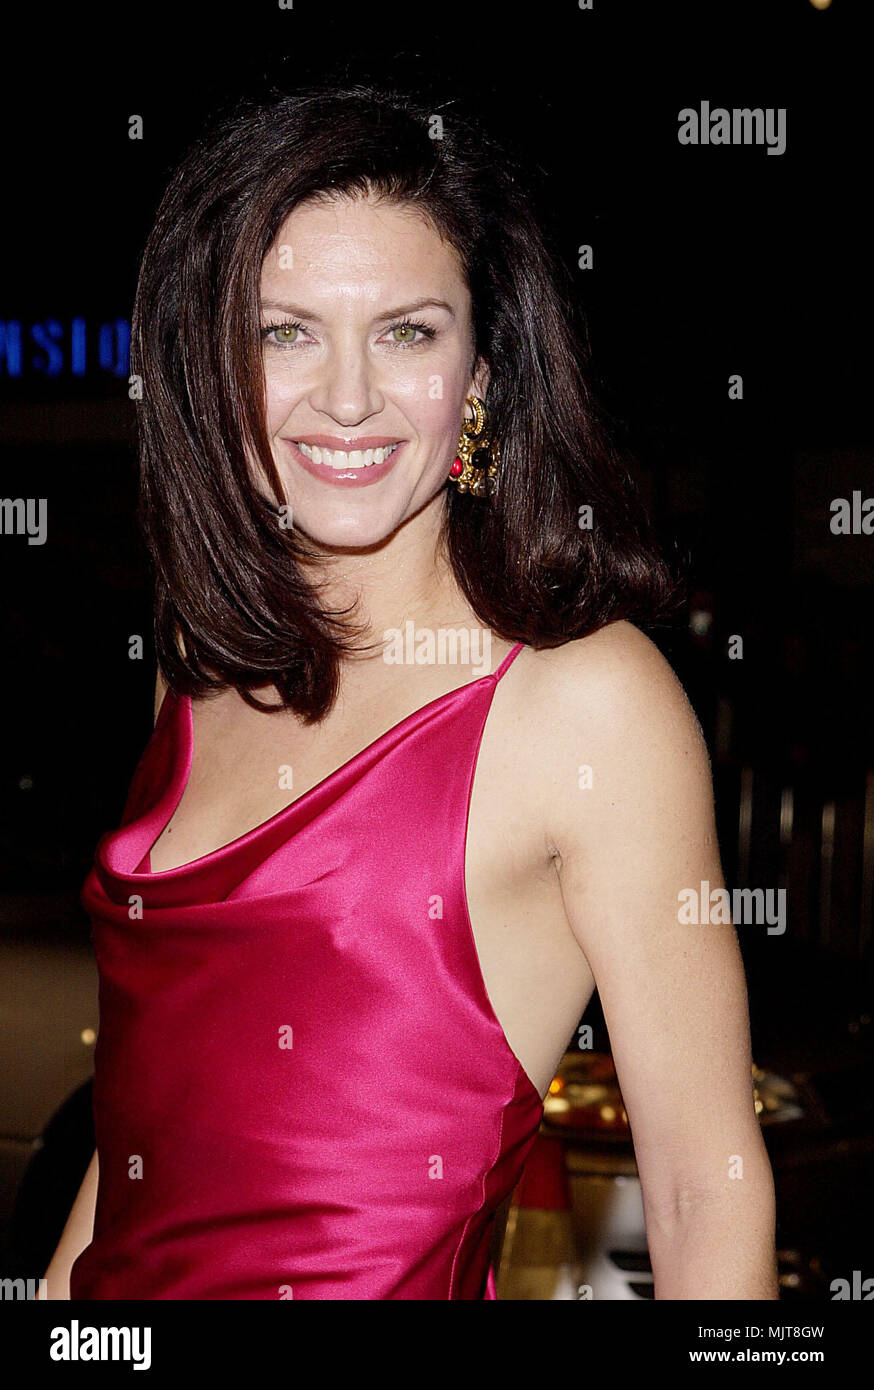 Wendy Crewson Young : wendy, crewson, young, Wendy, Crewson, Resolution, Stock, Photography, Images, Alamy